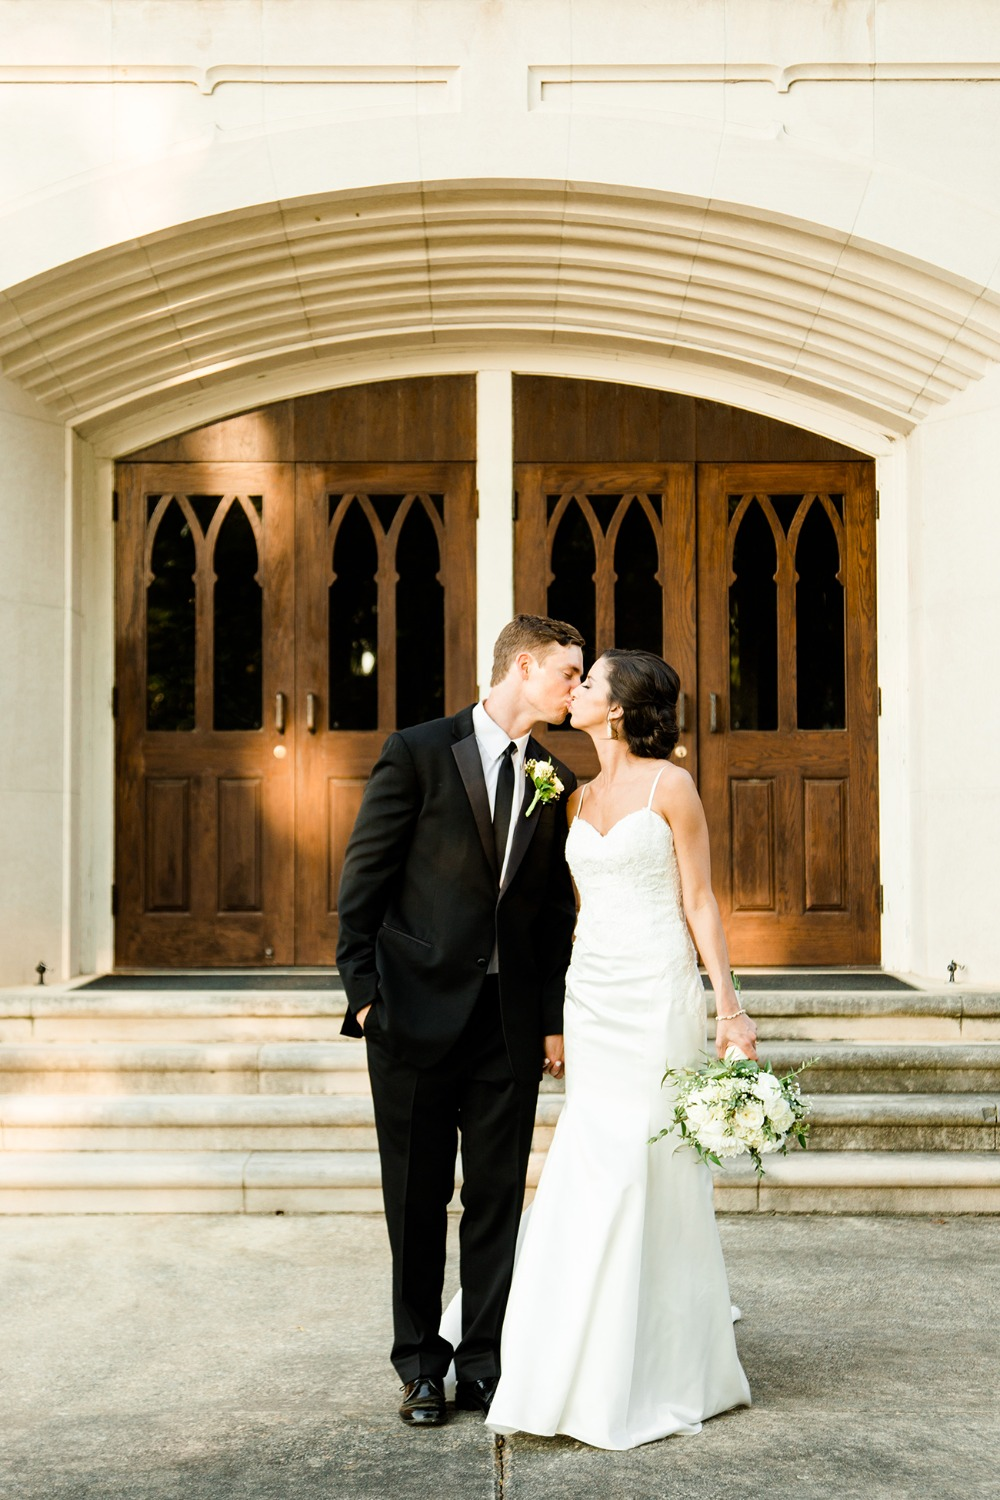 sweet wedding kiss photo